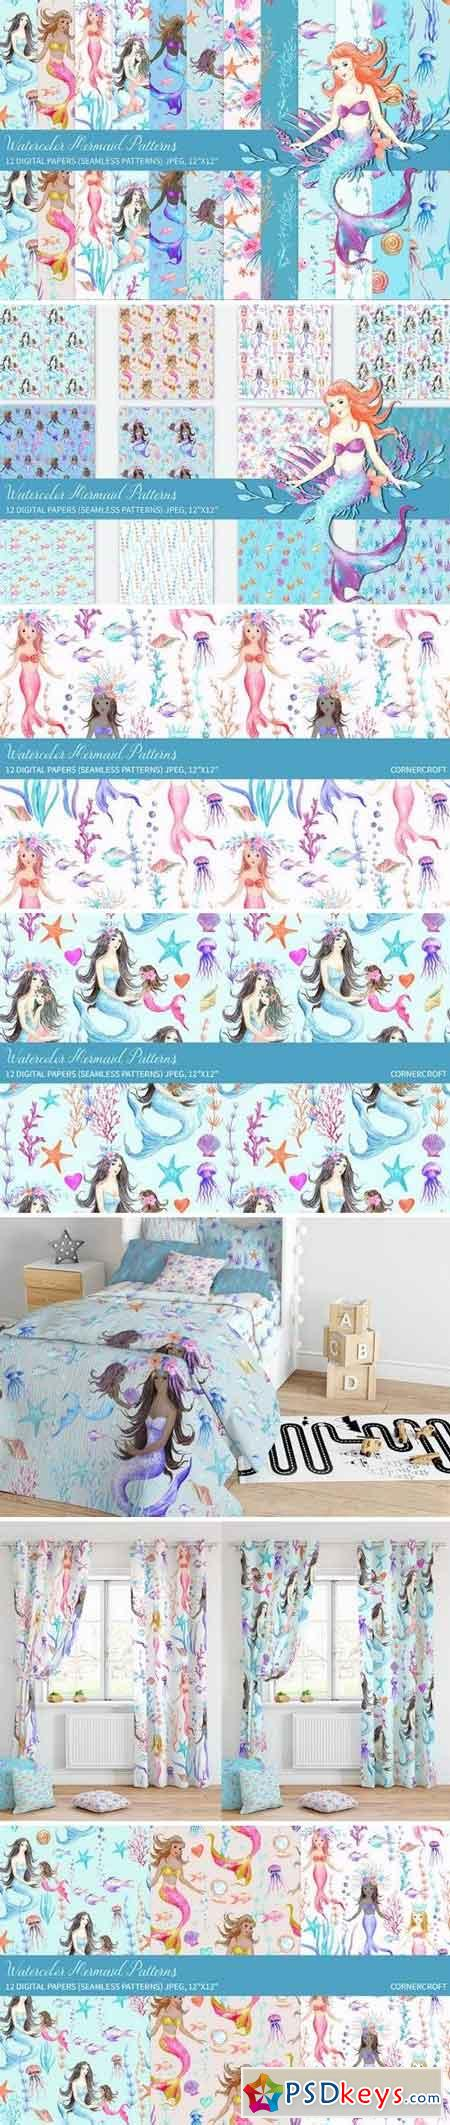 Watercolor Mermaid Digital Paper 3524469